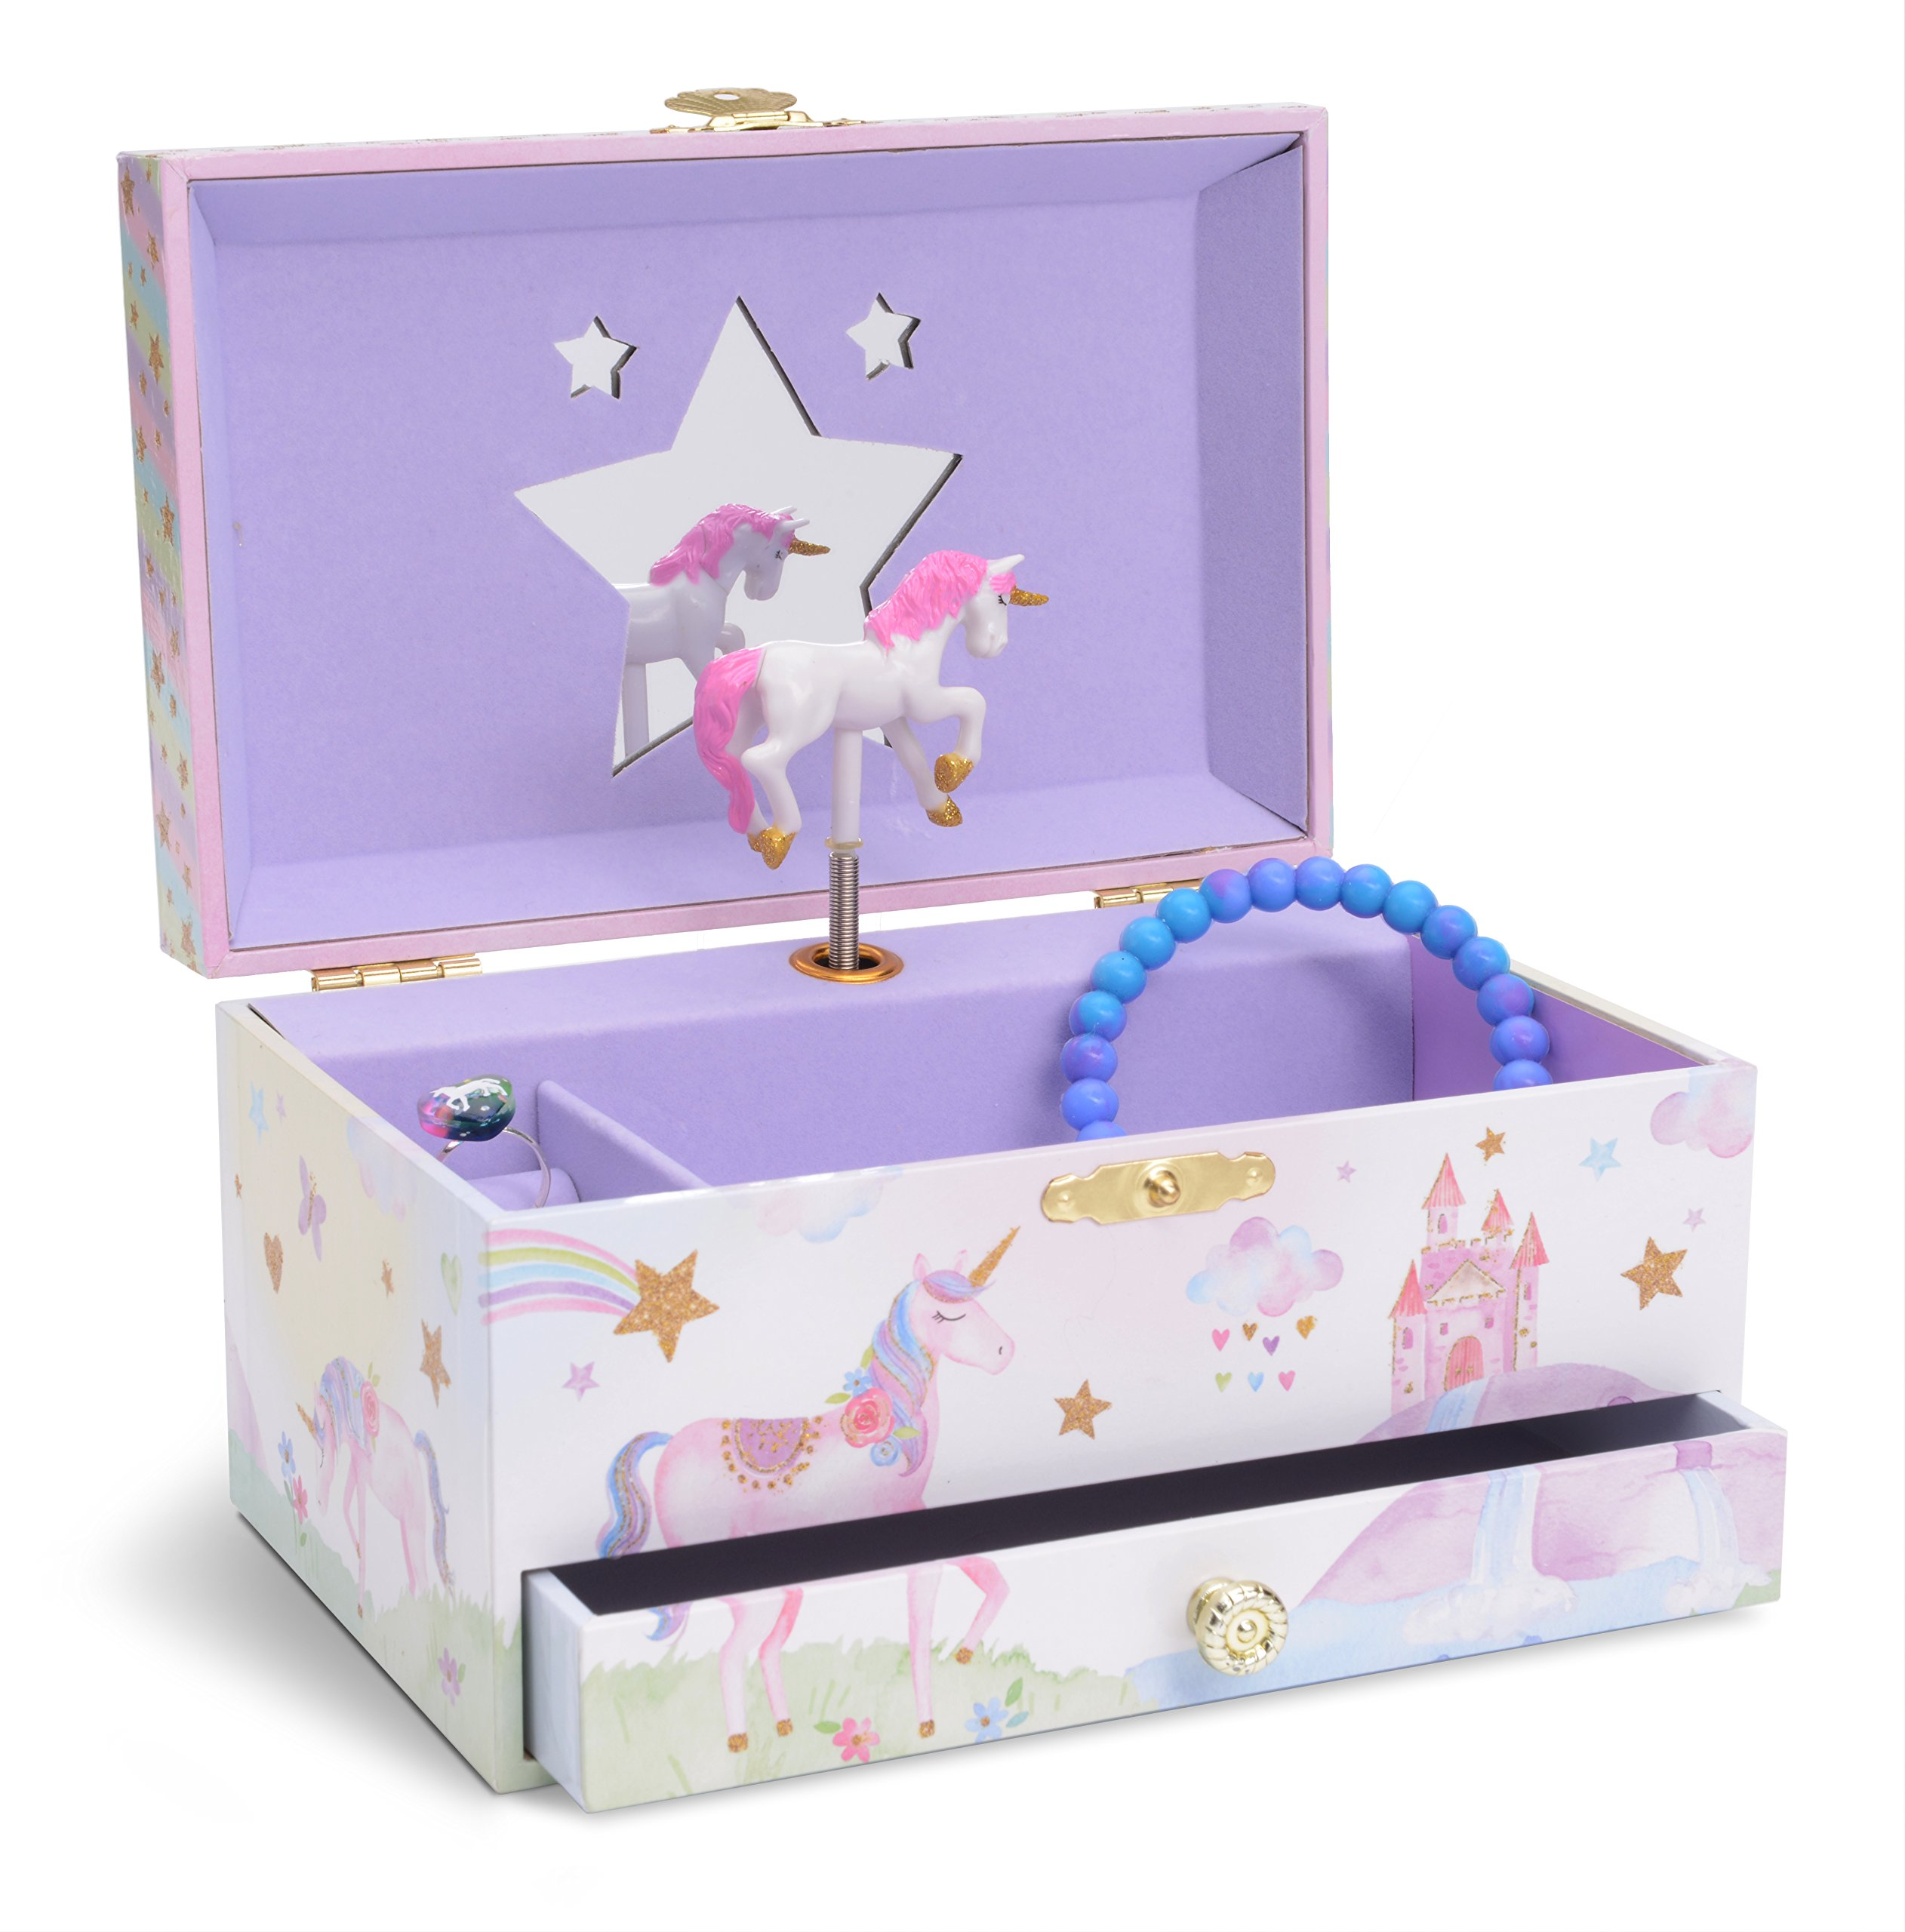 JewelKeeper Girl's Musical Jewelry Storage Box with Pullout Drawer, Glitter Rainbow and Stars Unicorn Design,Somewhere Over The Rainbow Tune